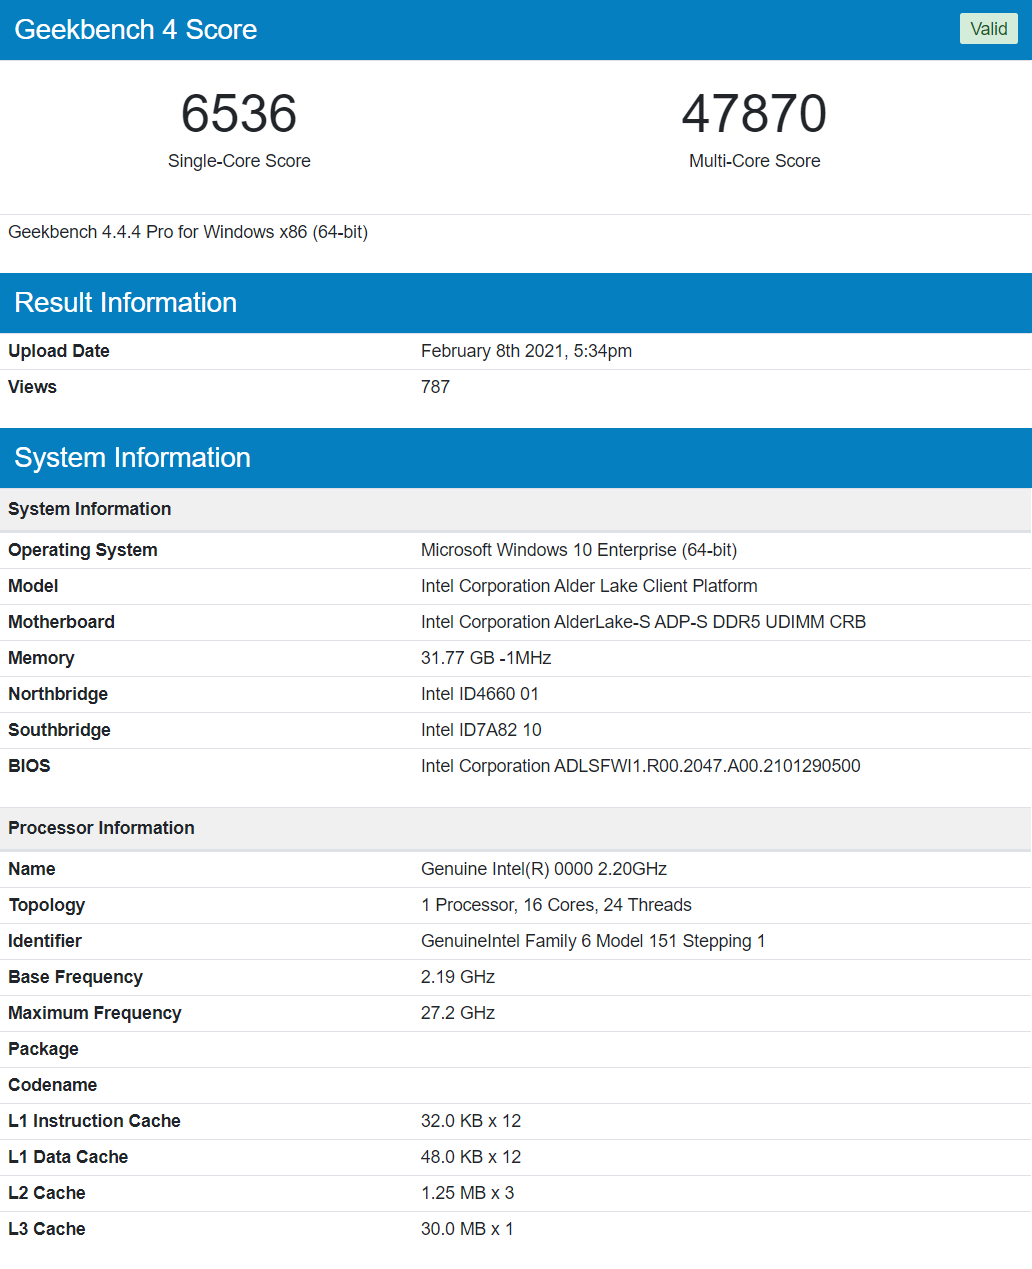 Sforum - Latest Technology Site Intel-Alder-Lake-16-Core-24-Thread-Desktop-CPU-12th-Gen-Core-Processor Introducing the performance of Intel's first 10nm CPU for desktop PCs, 16 cores only equal to the Core i9-10900K